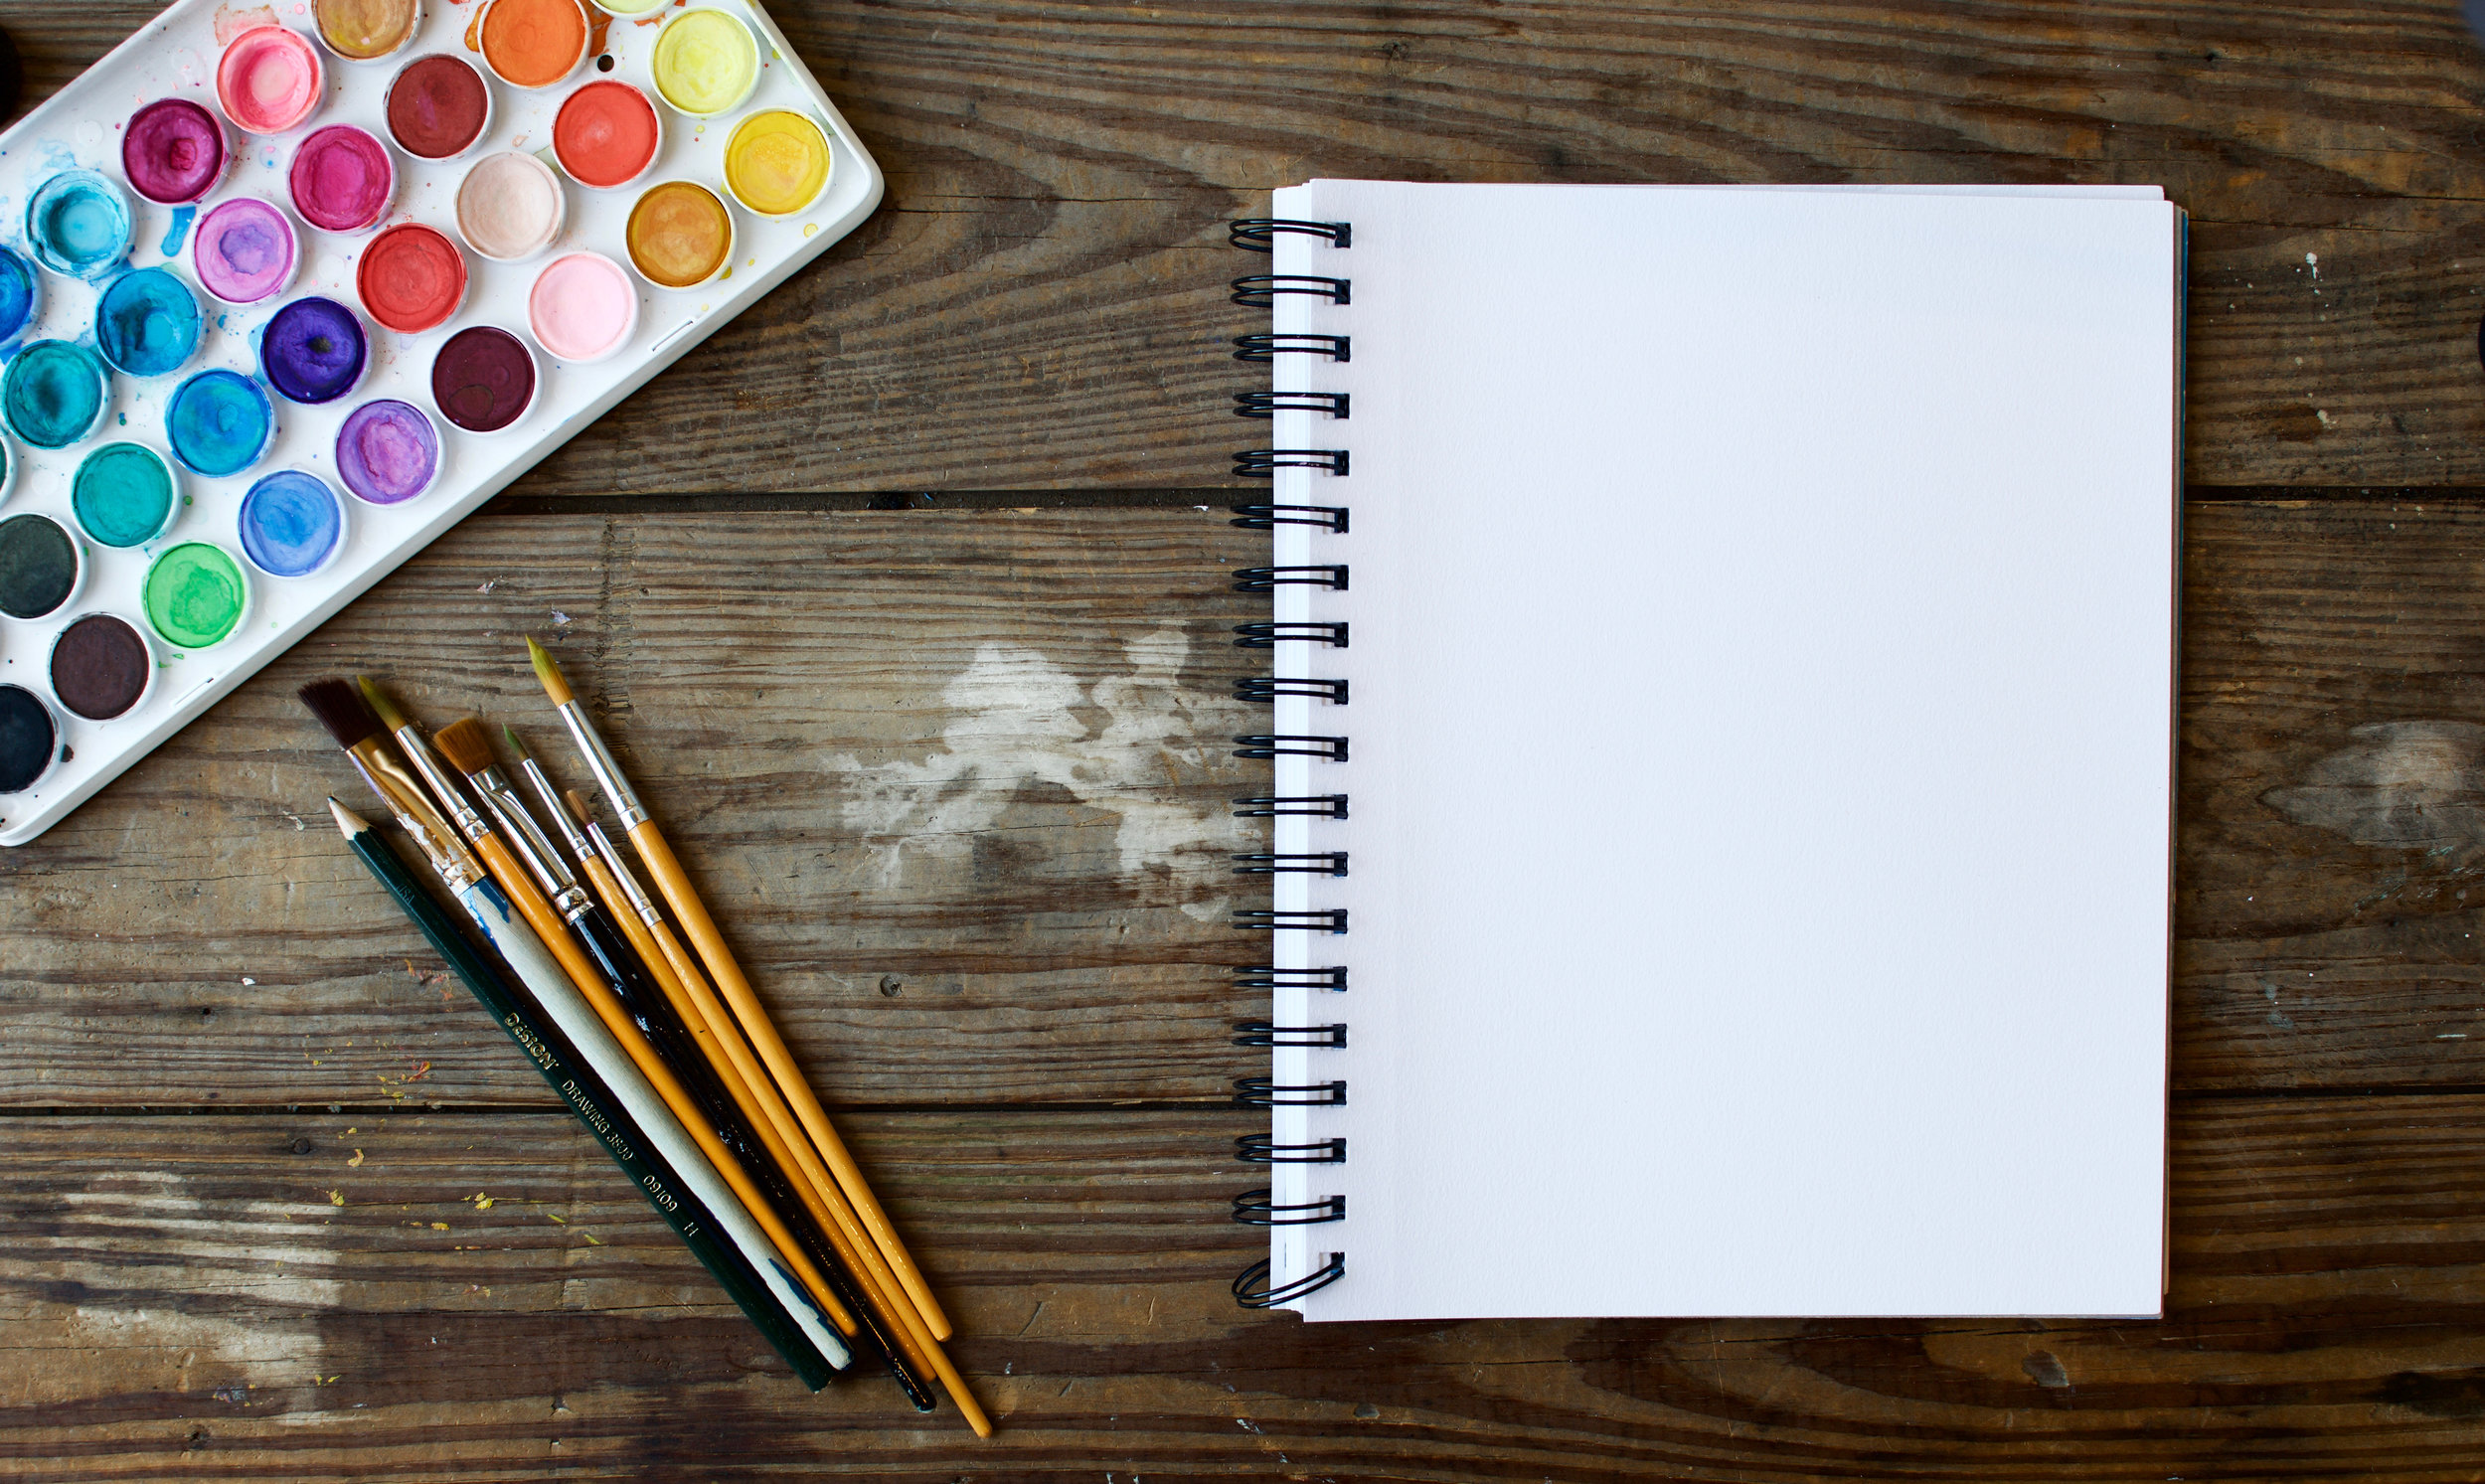 Creative Tuesdays! - Join us as we use meditation, art, music, free-writing and more to create our best life yet! Bring your favorite materials to class!Tuesdays 6:15-6:45 pm. Class is $5